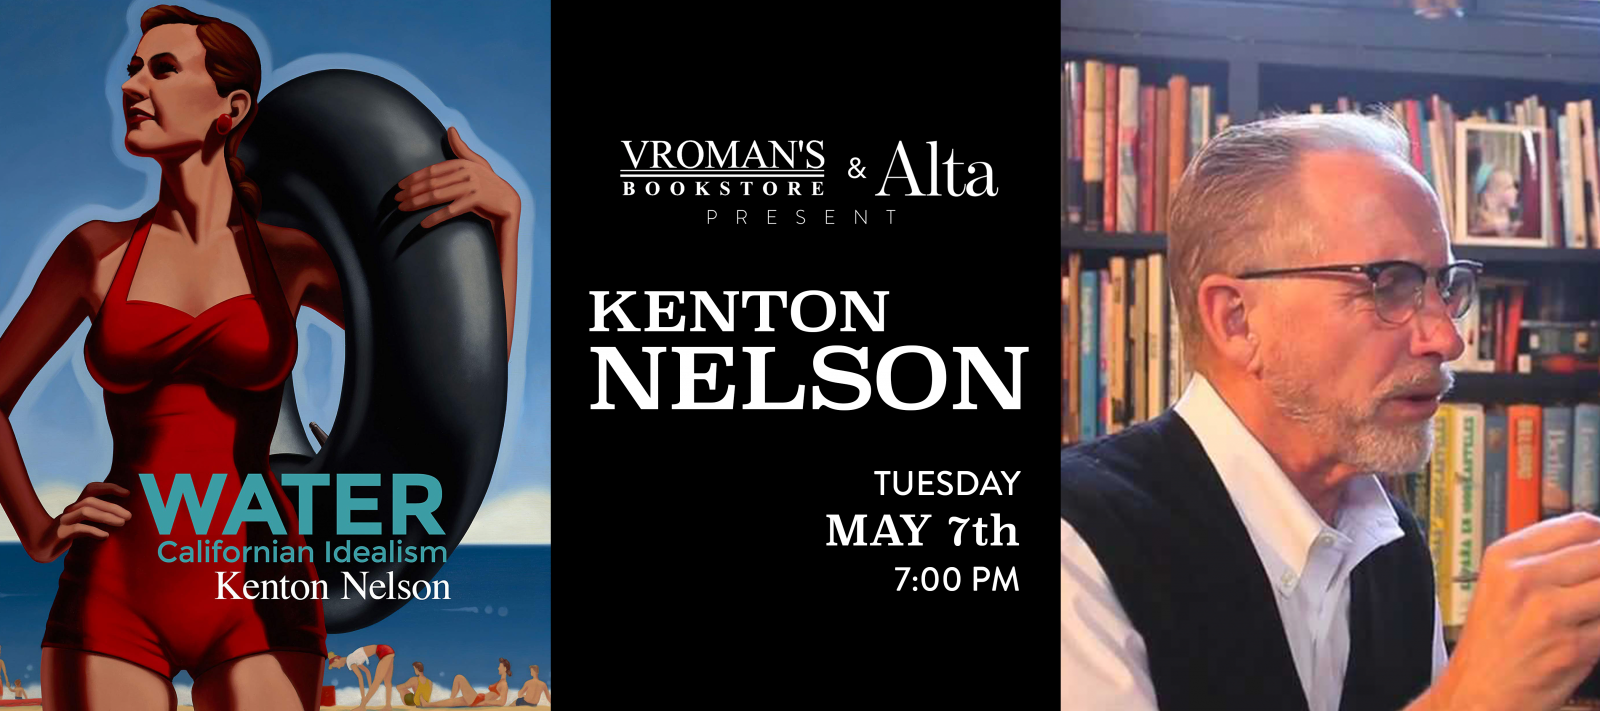 Kenton Nelson book signing Tuesday May 7th at 7pm